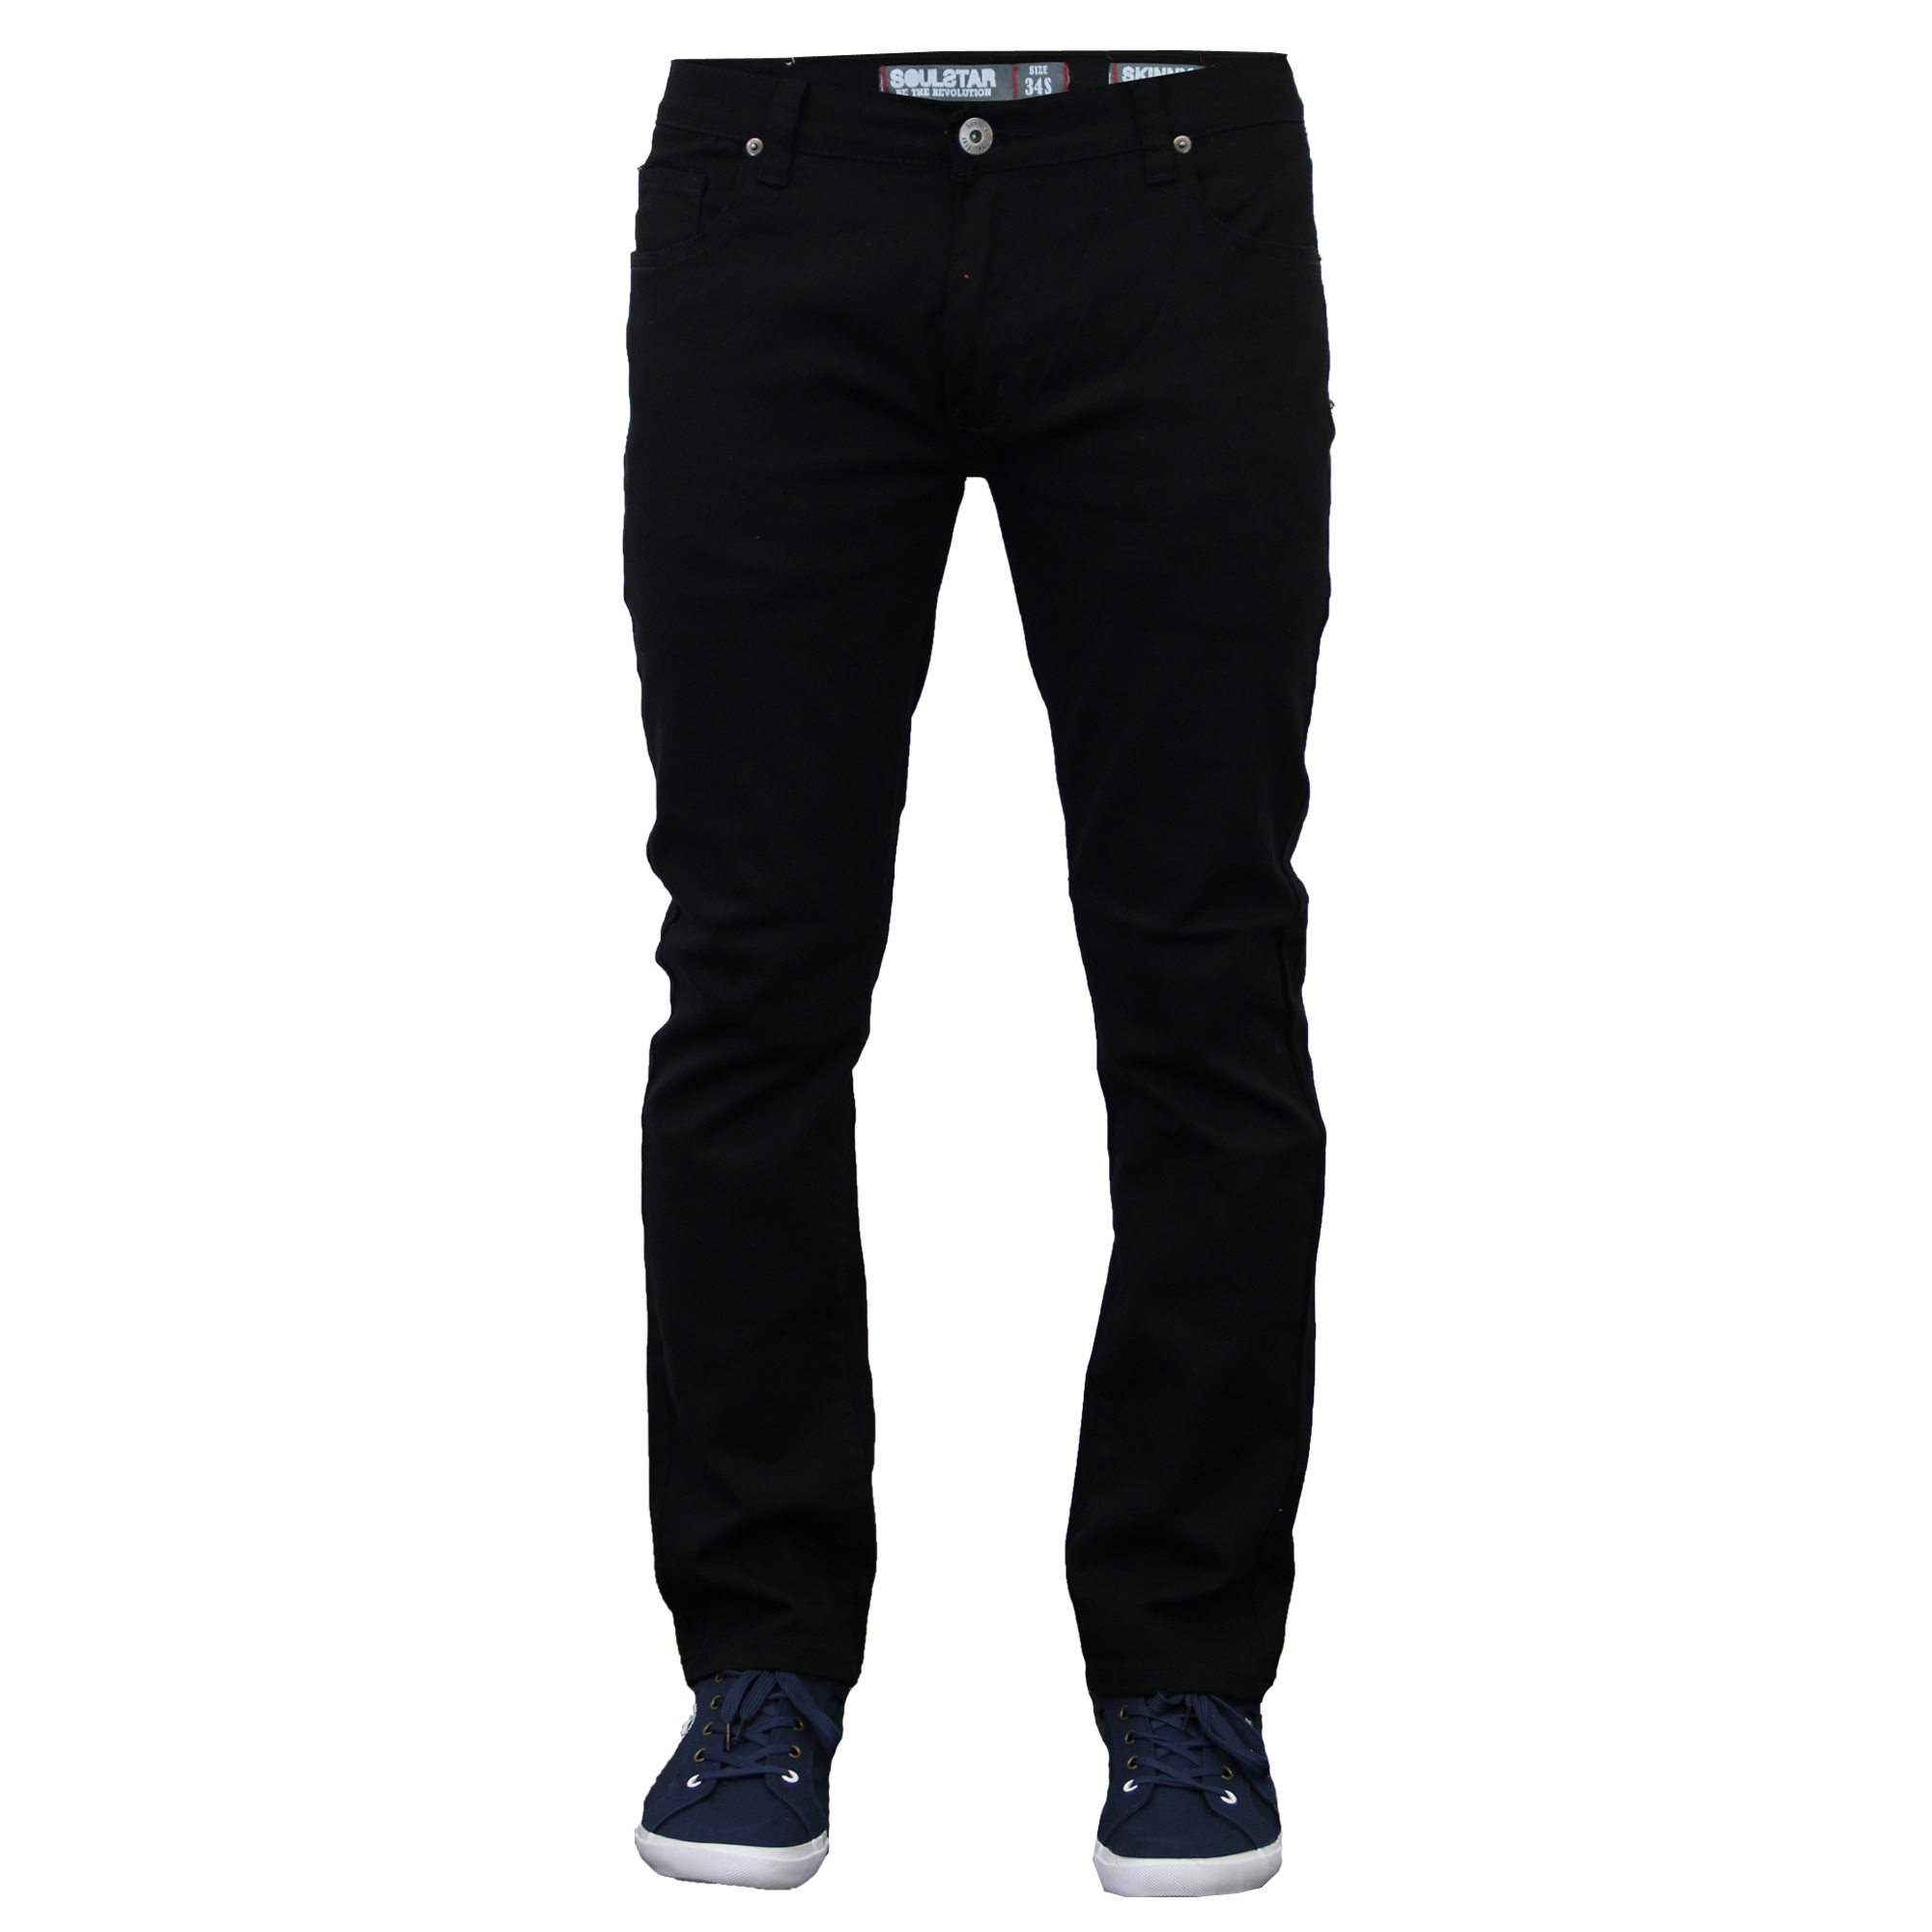 Dress to impress with men's jeans from Kmart. Style doesn't need to be complicated. A pair of men's jeans and a plain white tee creates a classic look without much effort.